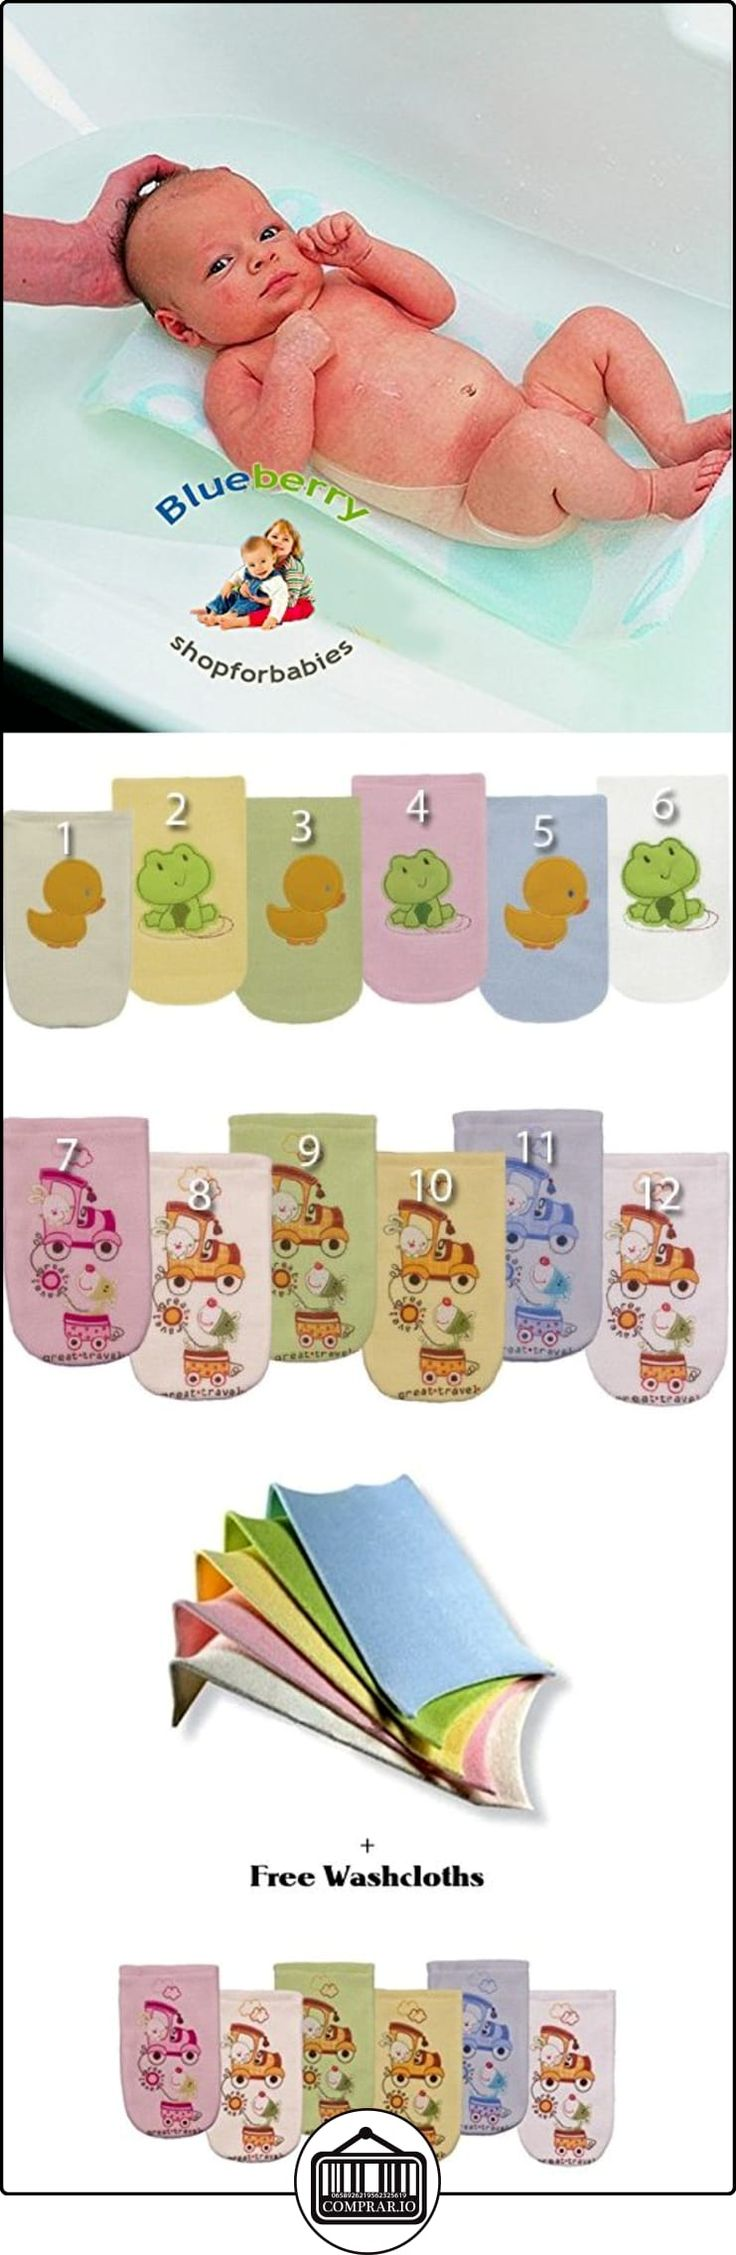 17 best ideas about baby bath seat on pinterest baby bath time toddler bath toys and baby pool